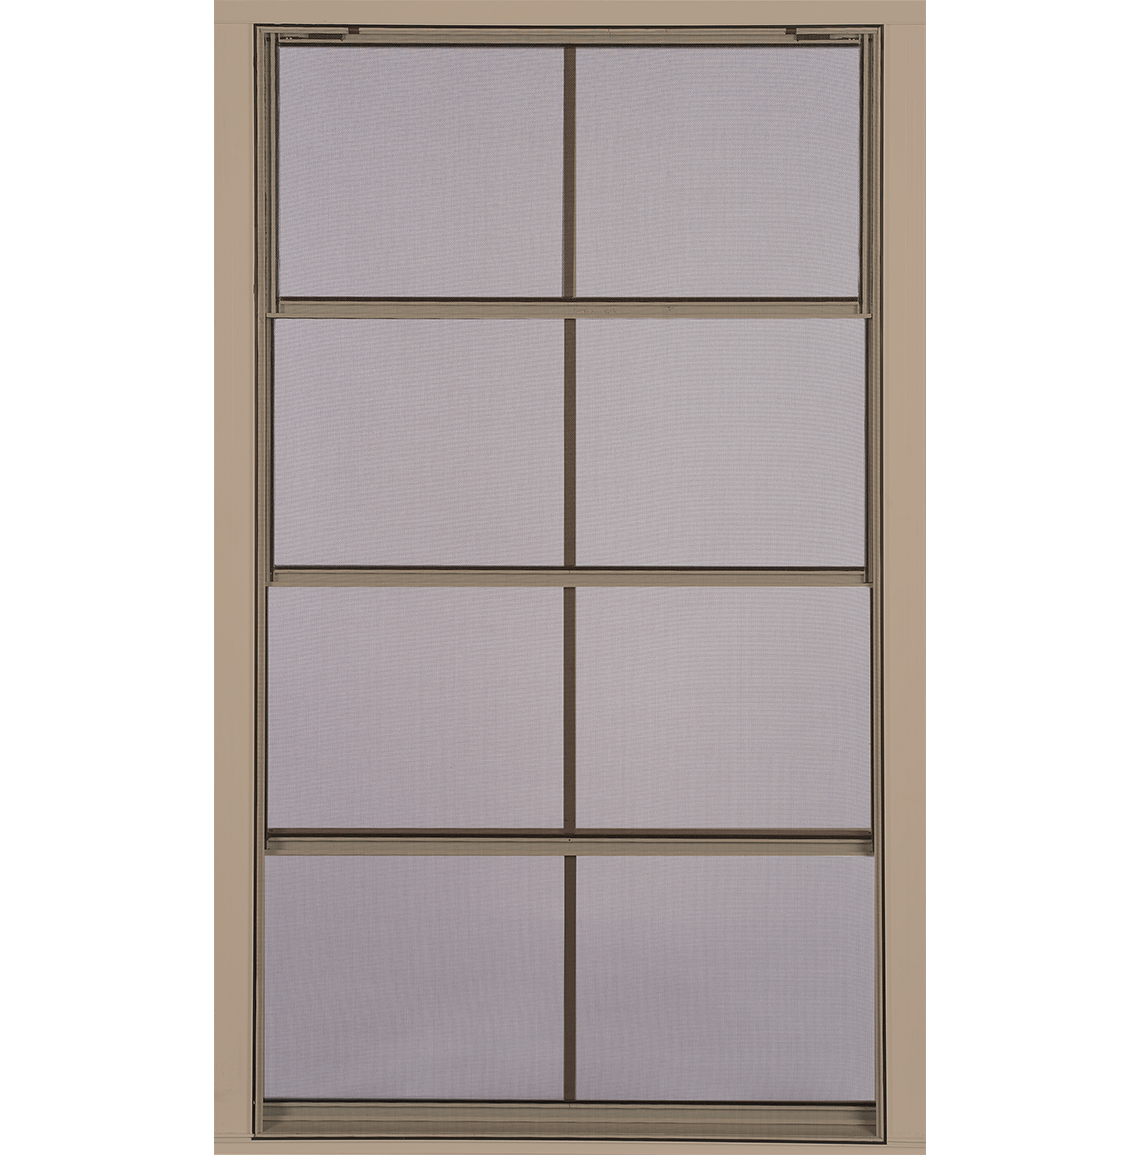 Eze Breeze Sunroom Windows 4track Vertical Vinyl Sliding